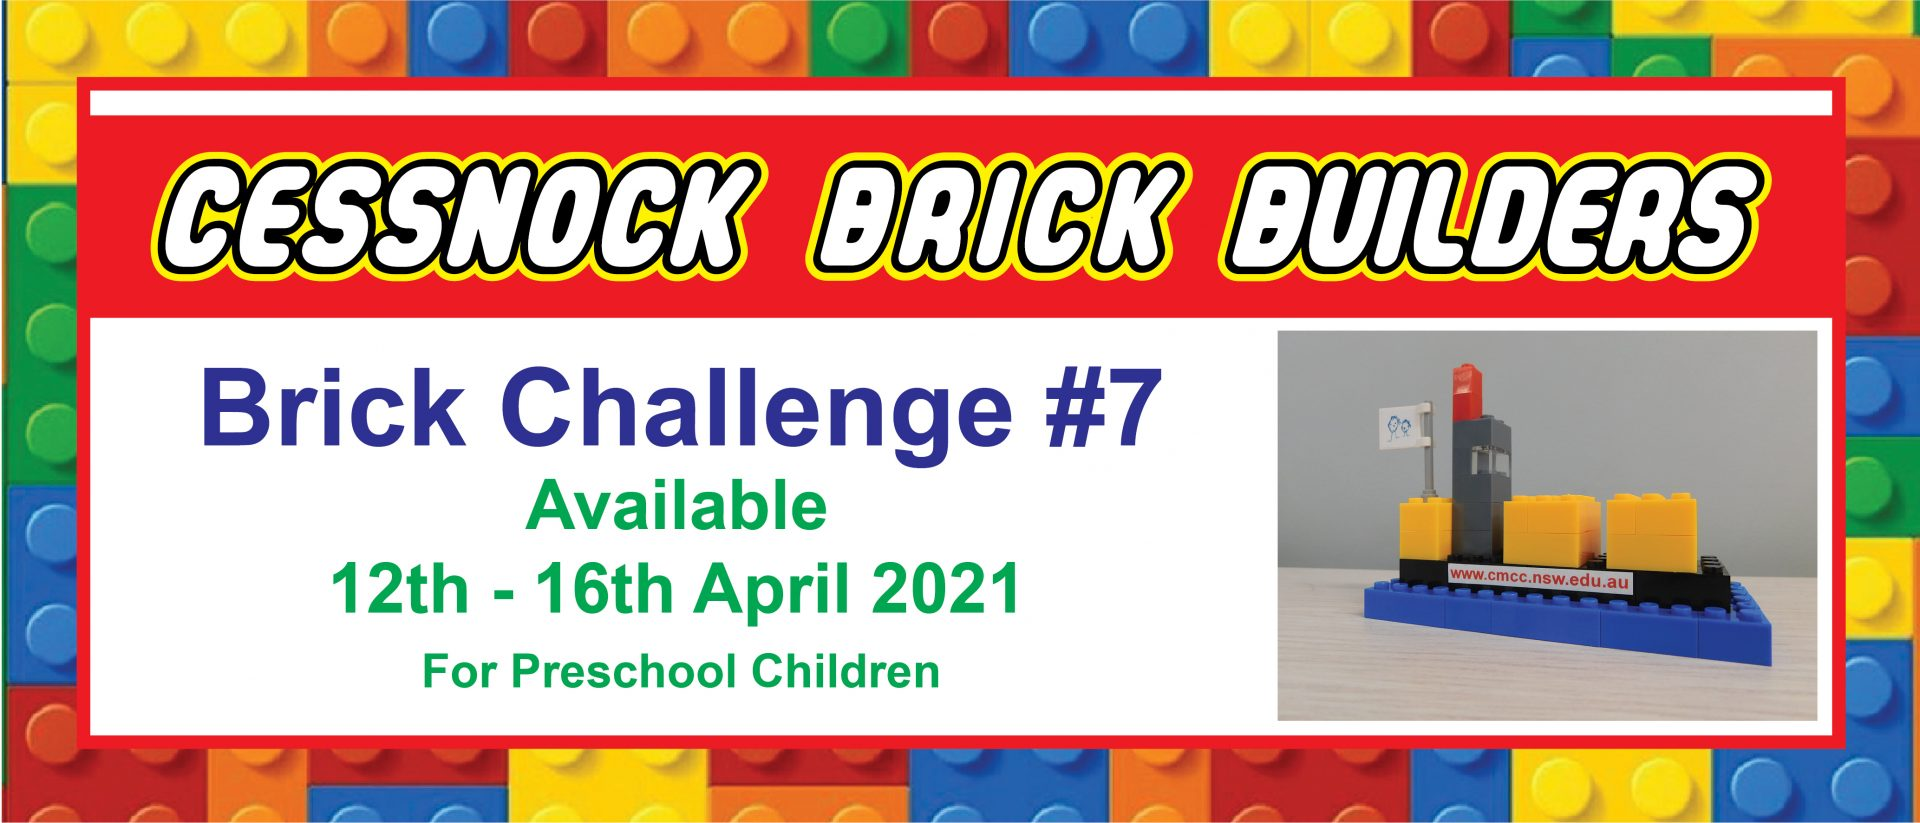 1 Cessnock Brick Builders Challenge 7 Being Delivered EVERYTHING - Home